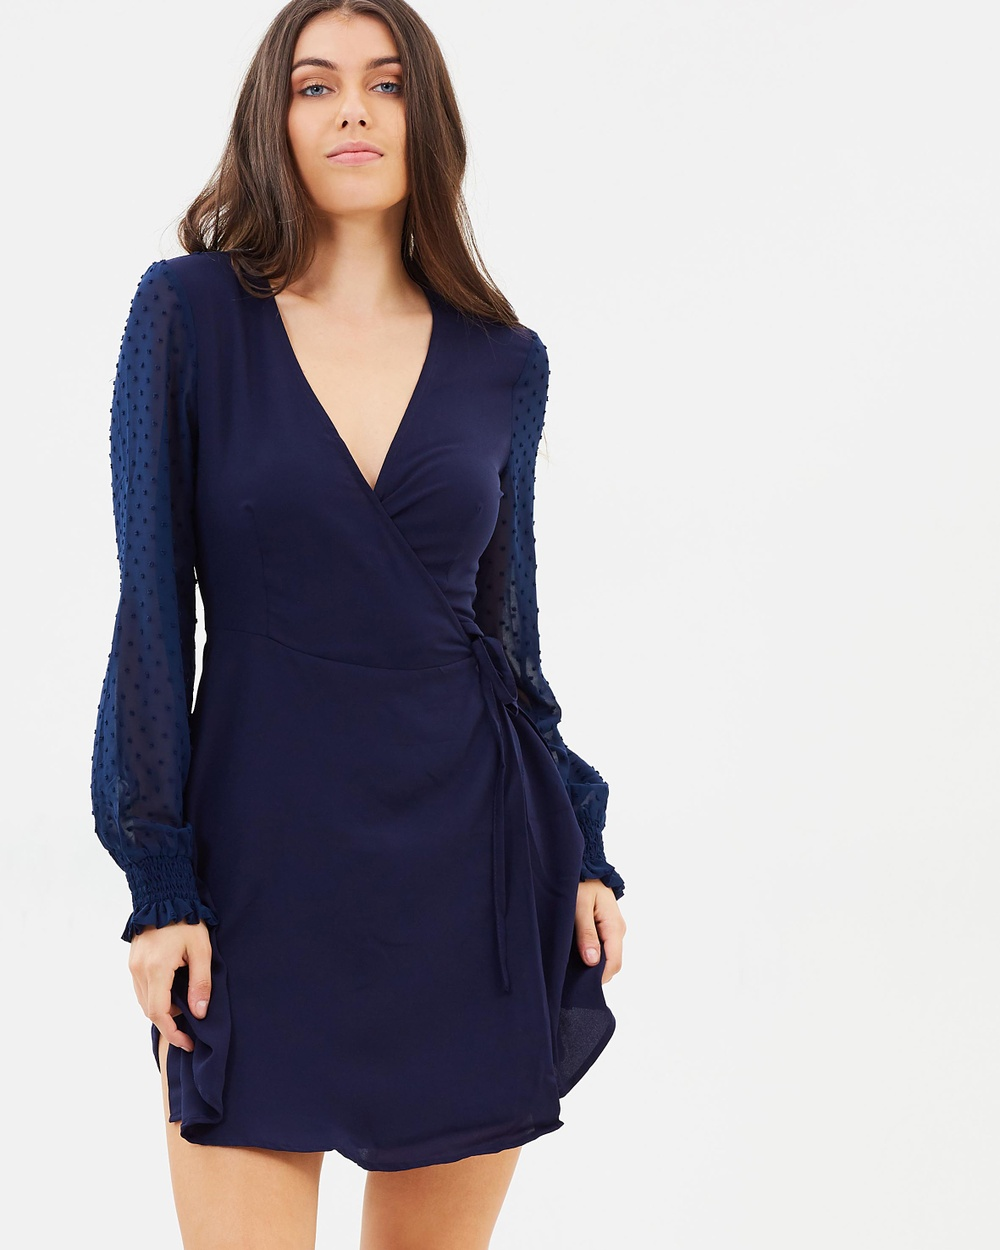 Atmos & Here ICONIC EXCLUSIVE Adalyn Wrap Dress Dresses Navy ICONIC EXCLUSIVE Adalyn Wrap Dress